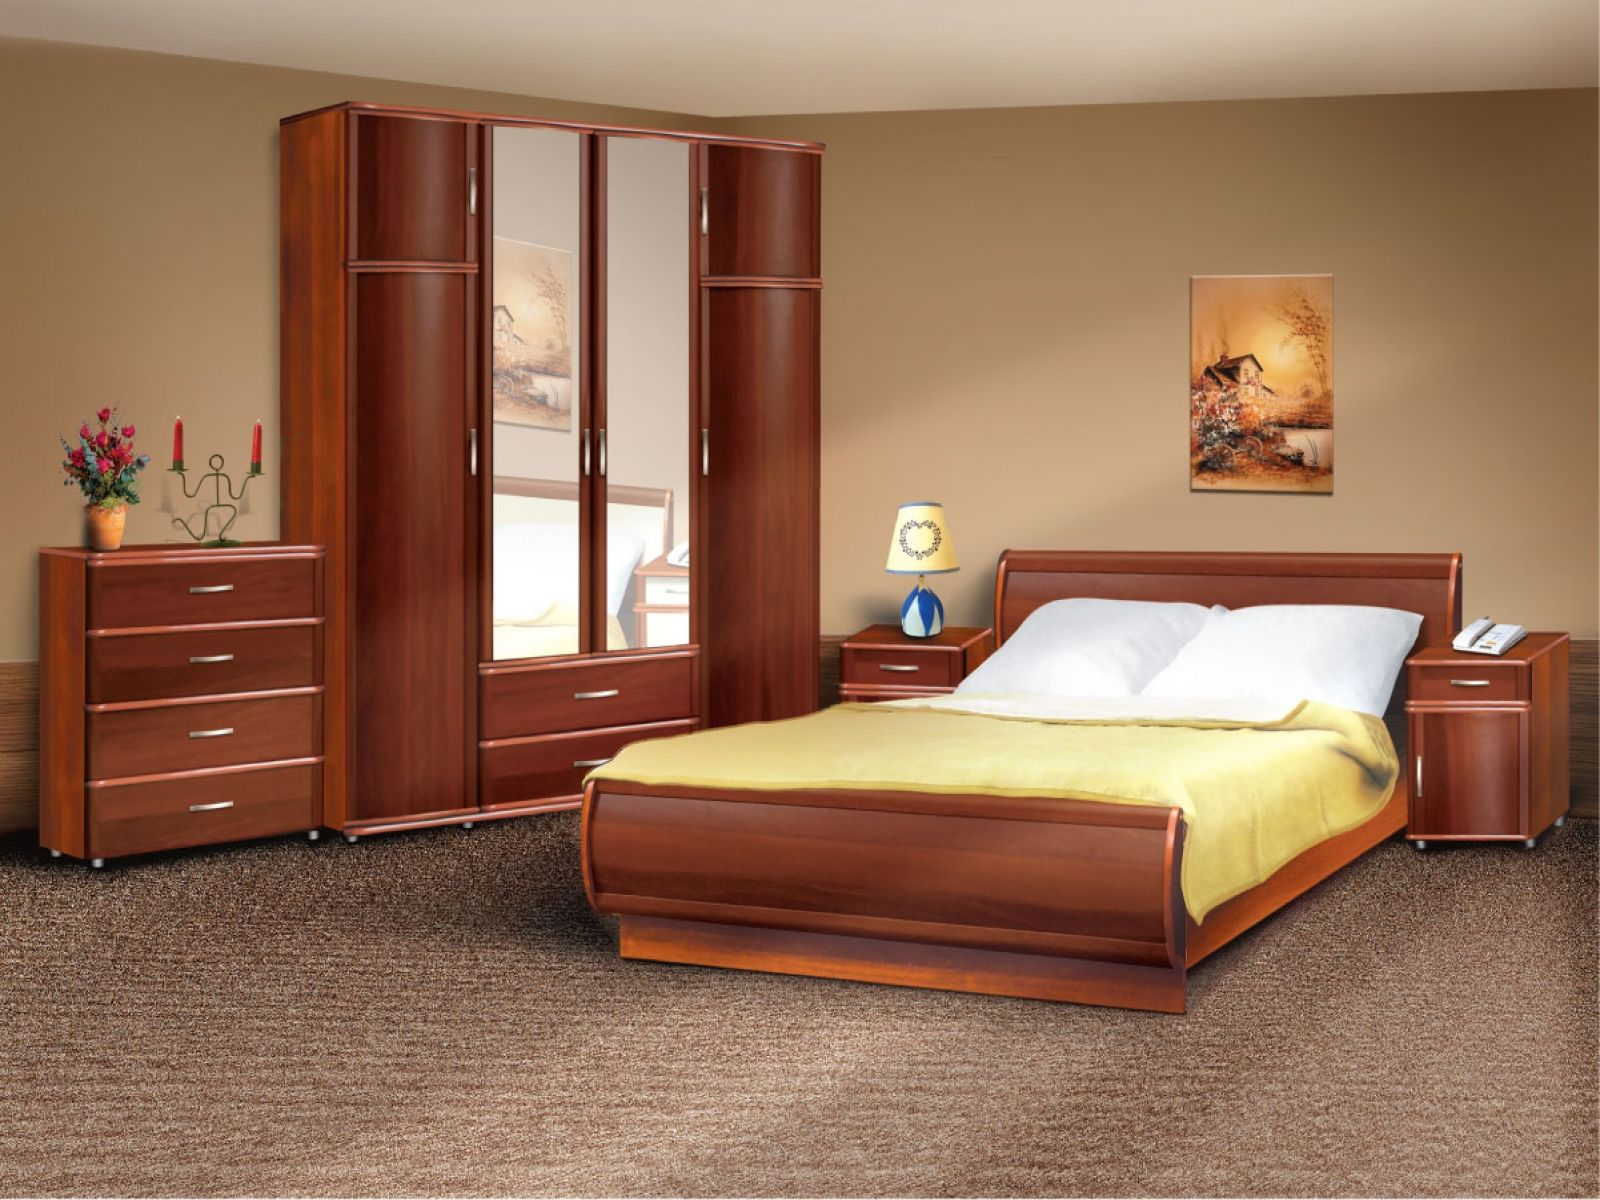 In vogue arc wooden headboard king size bed and double for Small bedroom double bed ideas